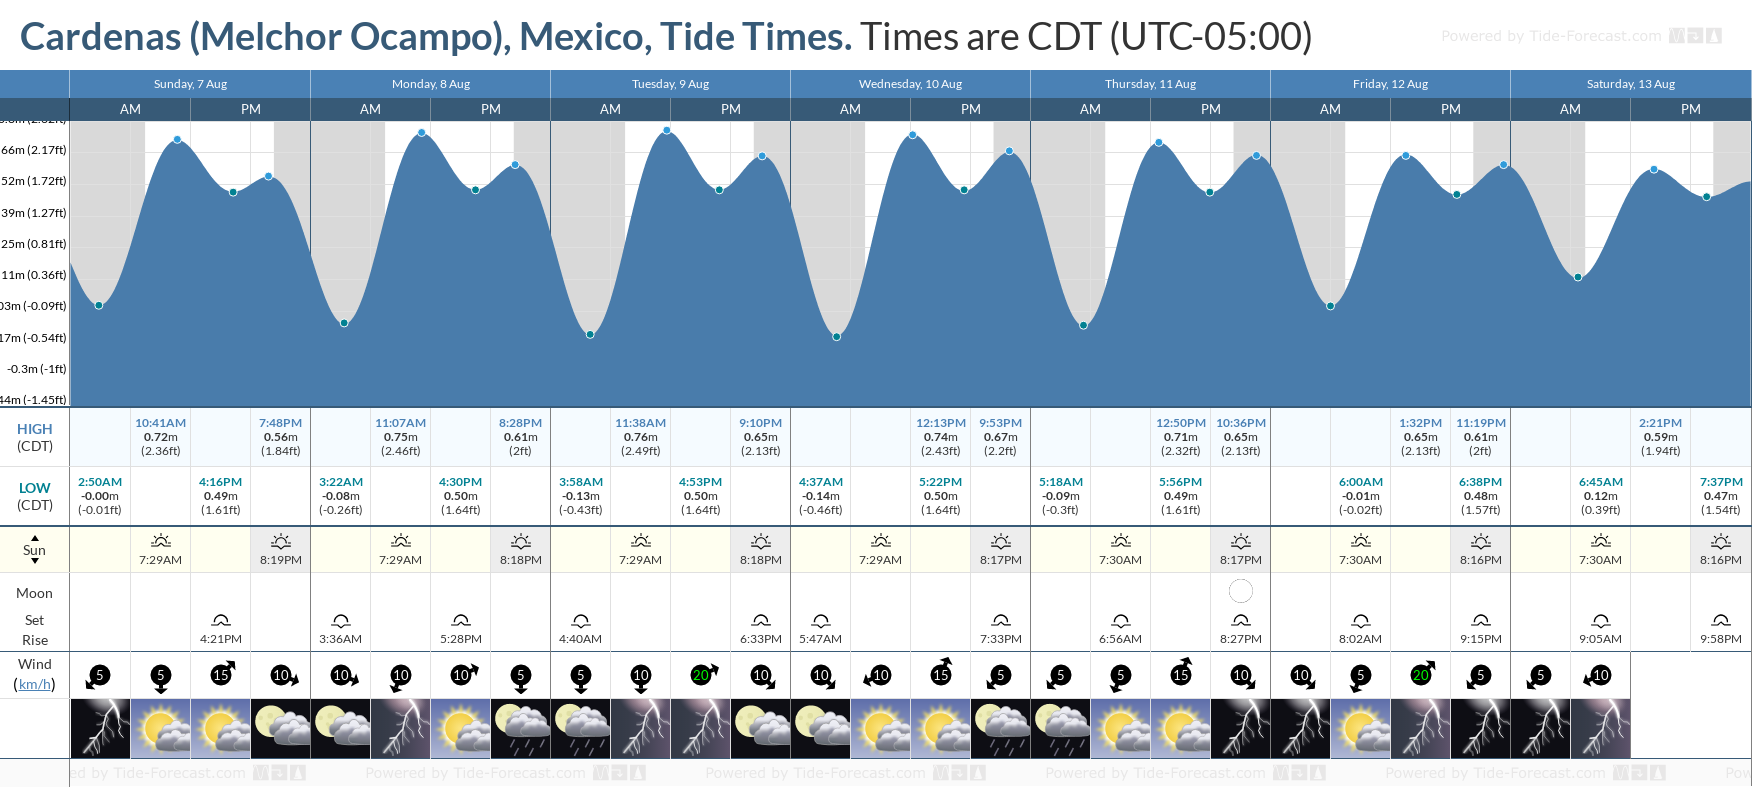 Cardenas (Melchor Ocampo), Mexico Tide Chart including high and low tide tide times for the next 7 days